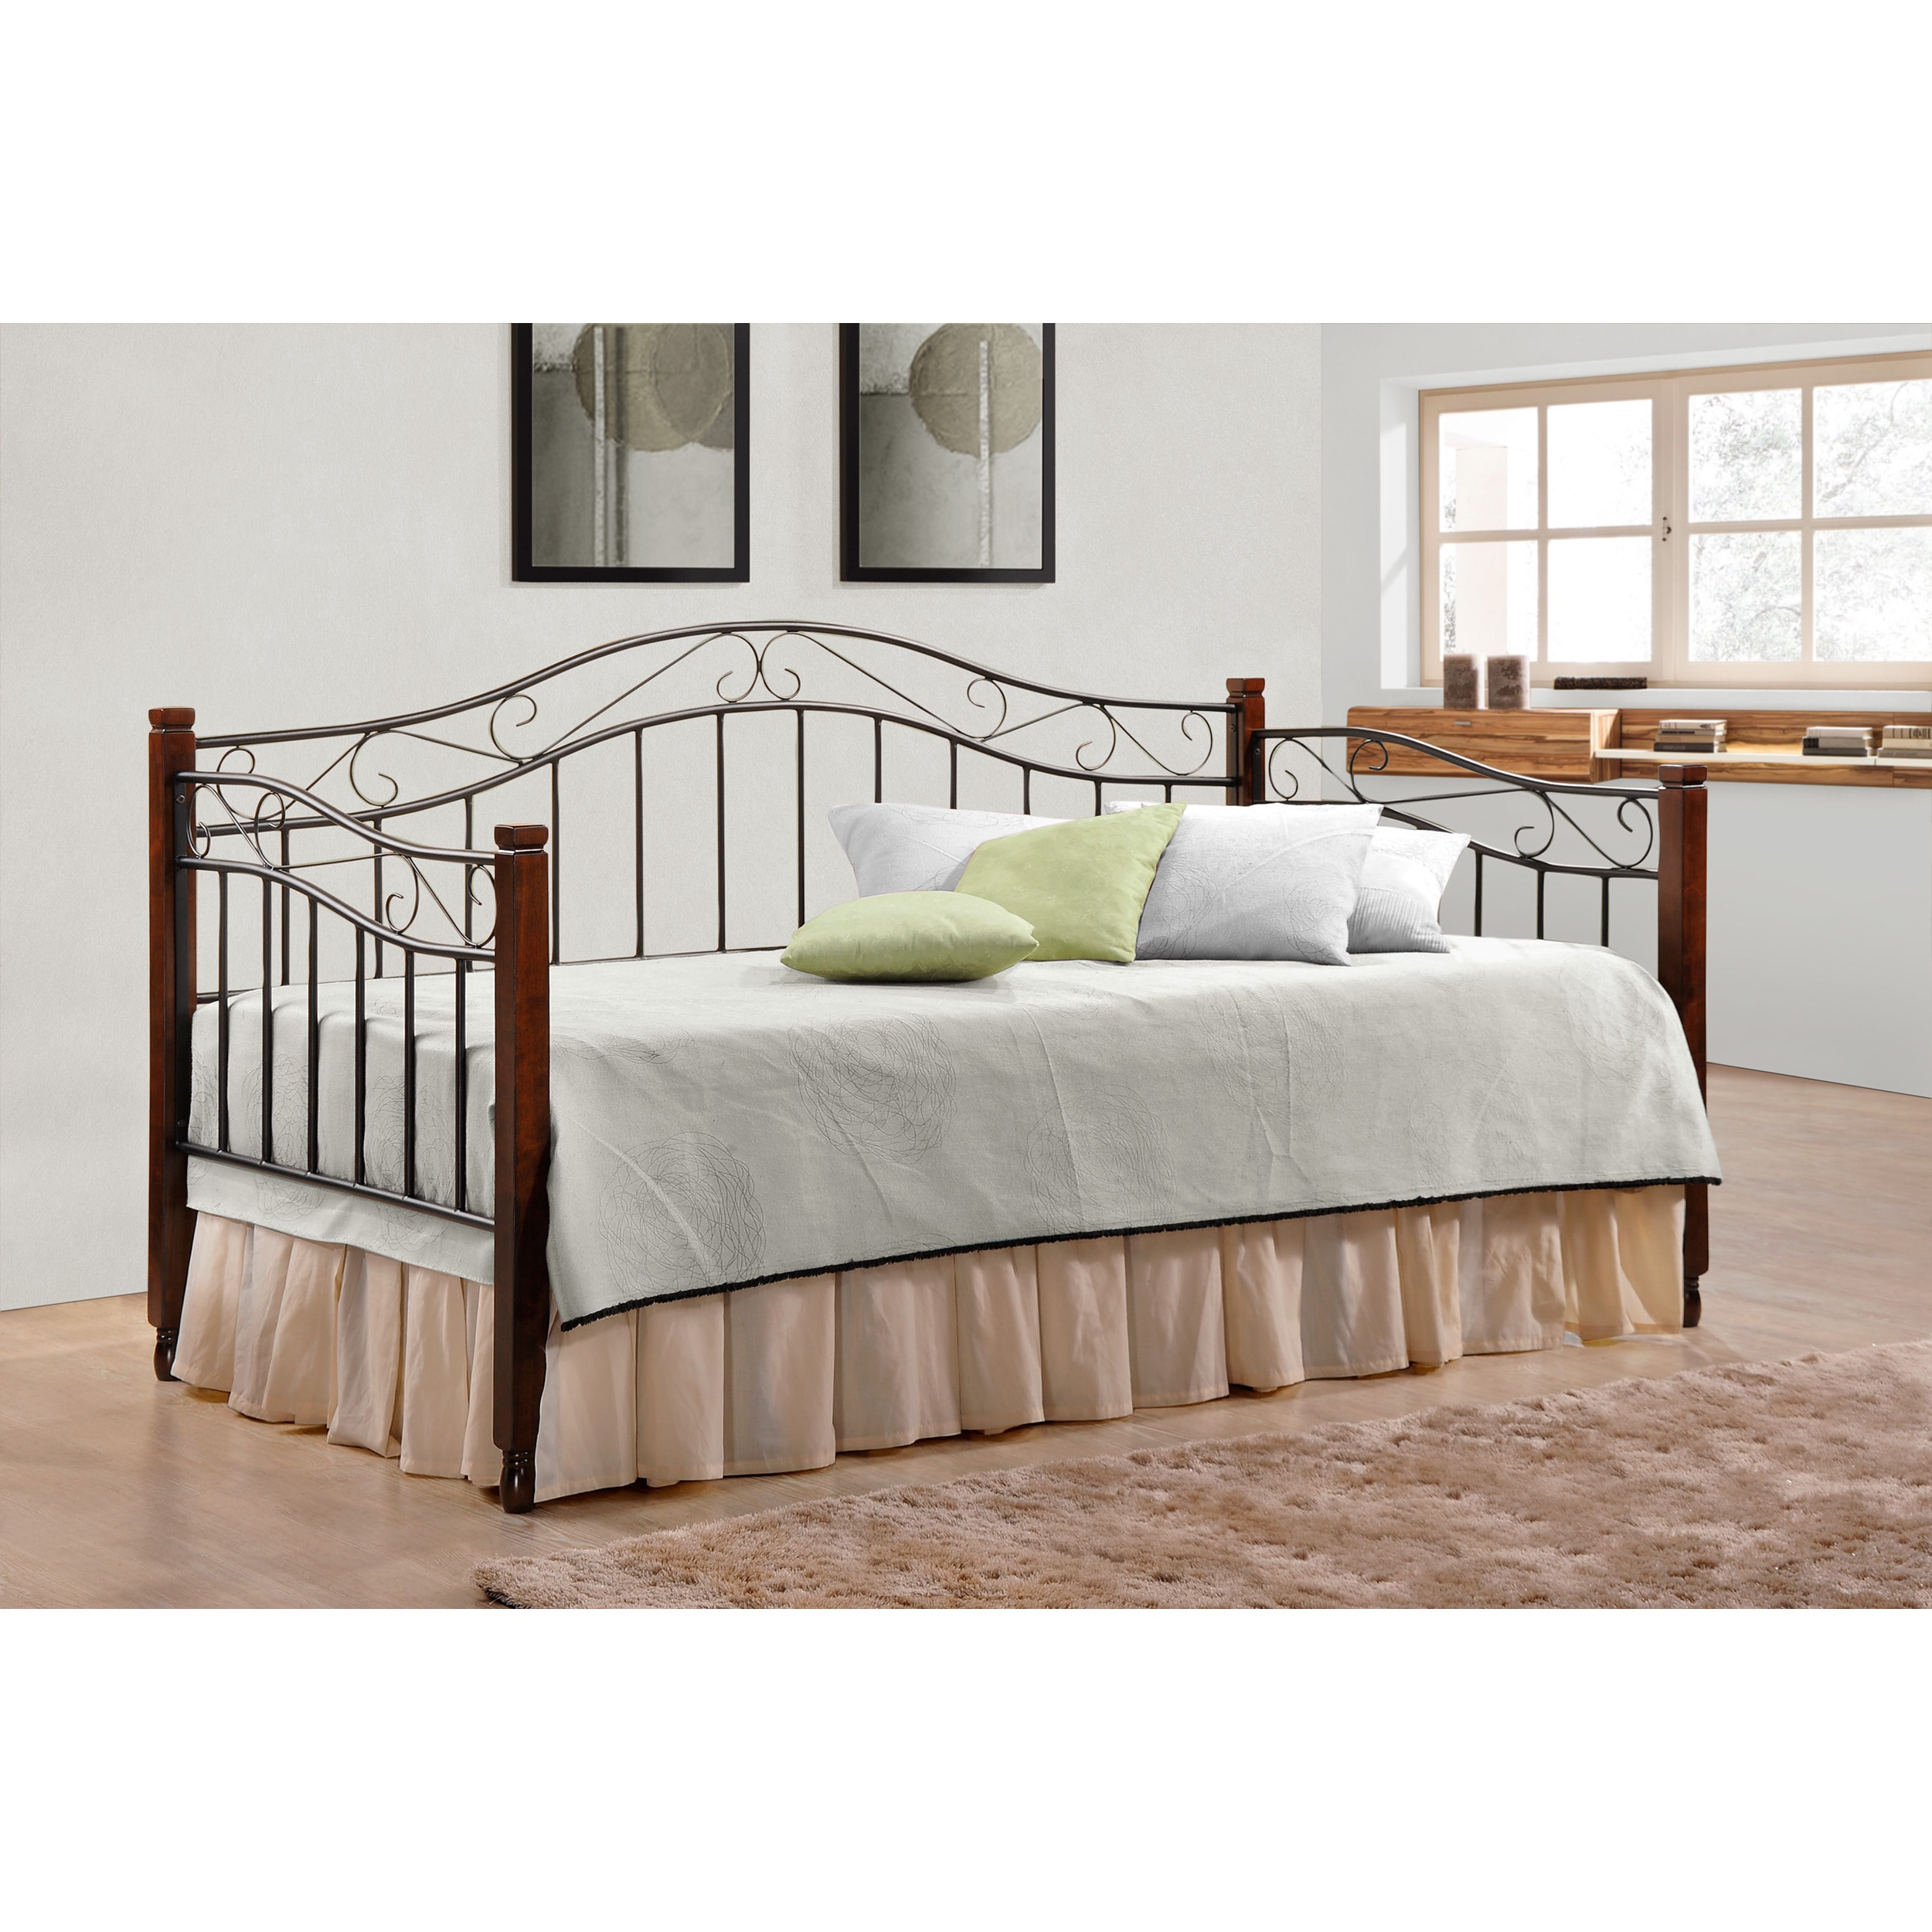 Coaster Furniture Cinnamon and Black Twin Daybed (Daybed)